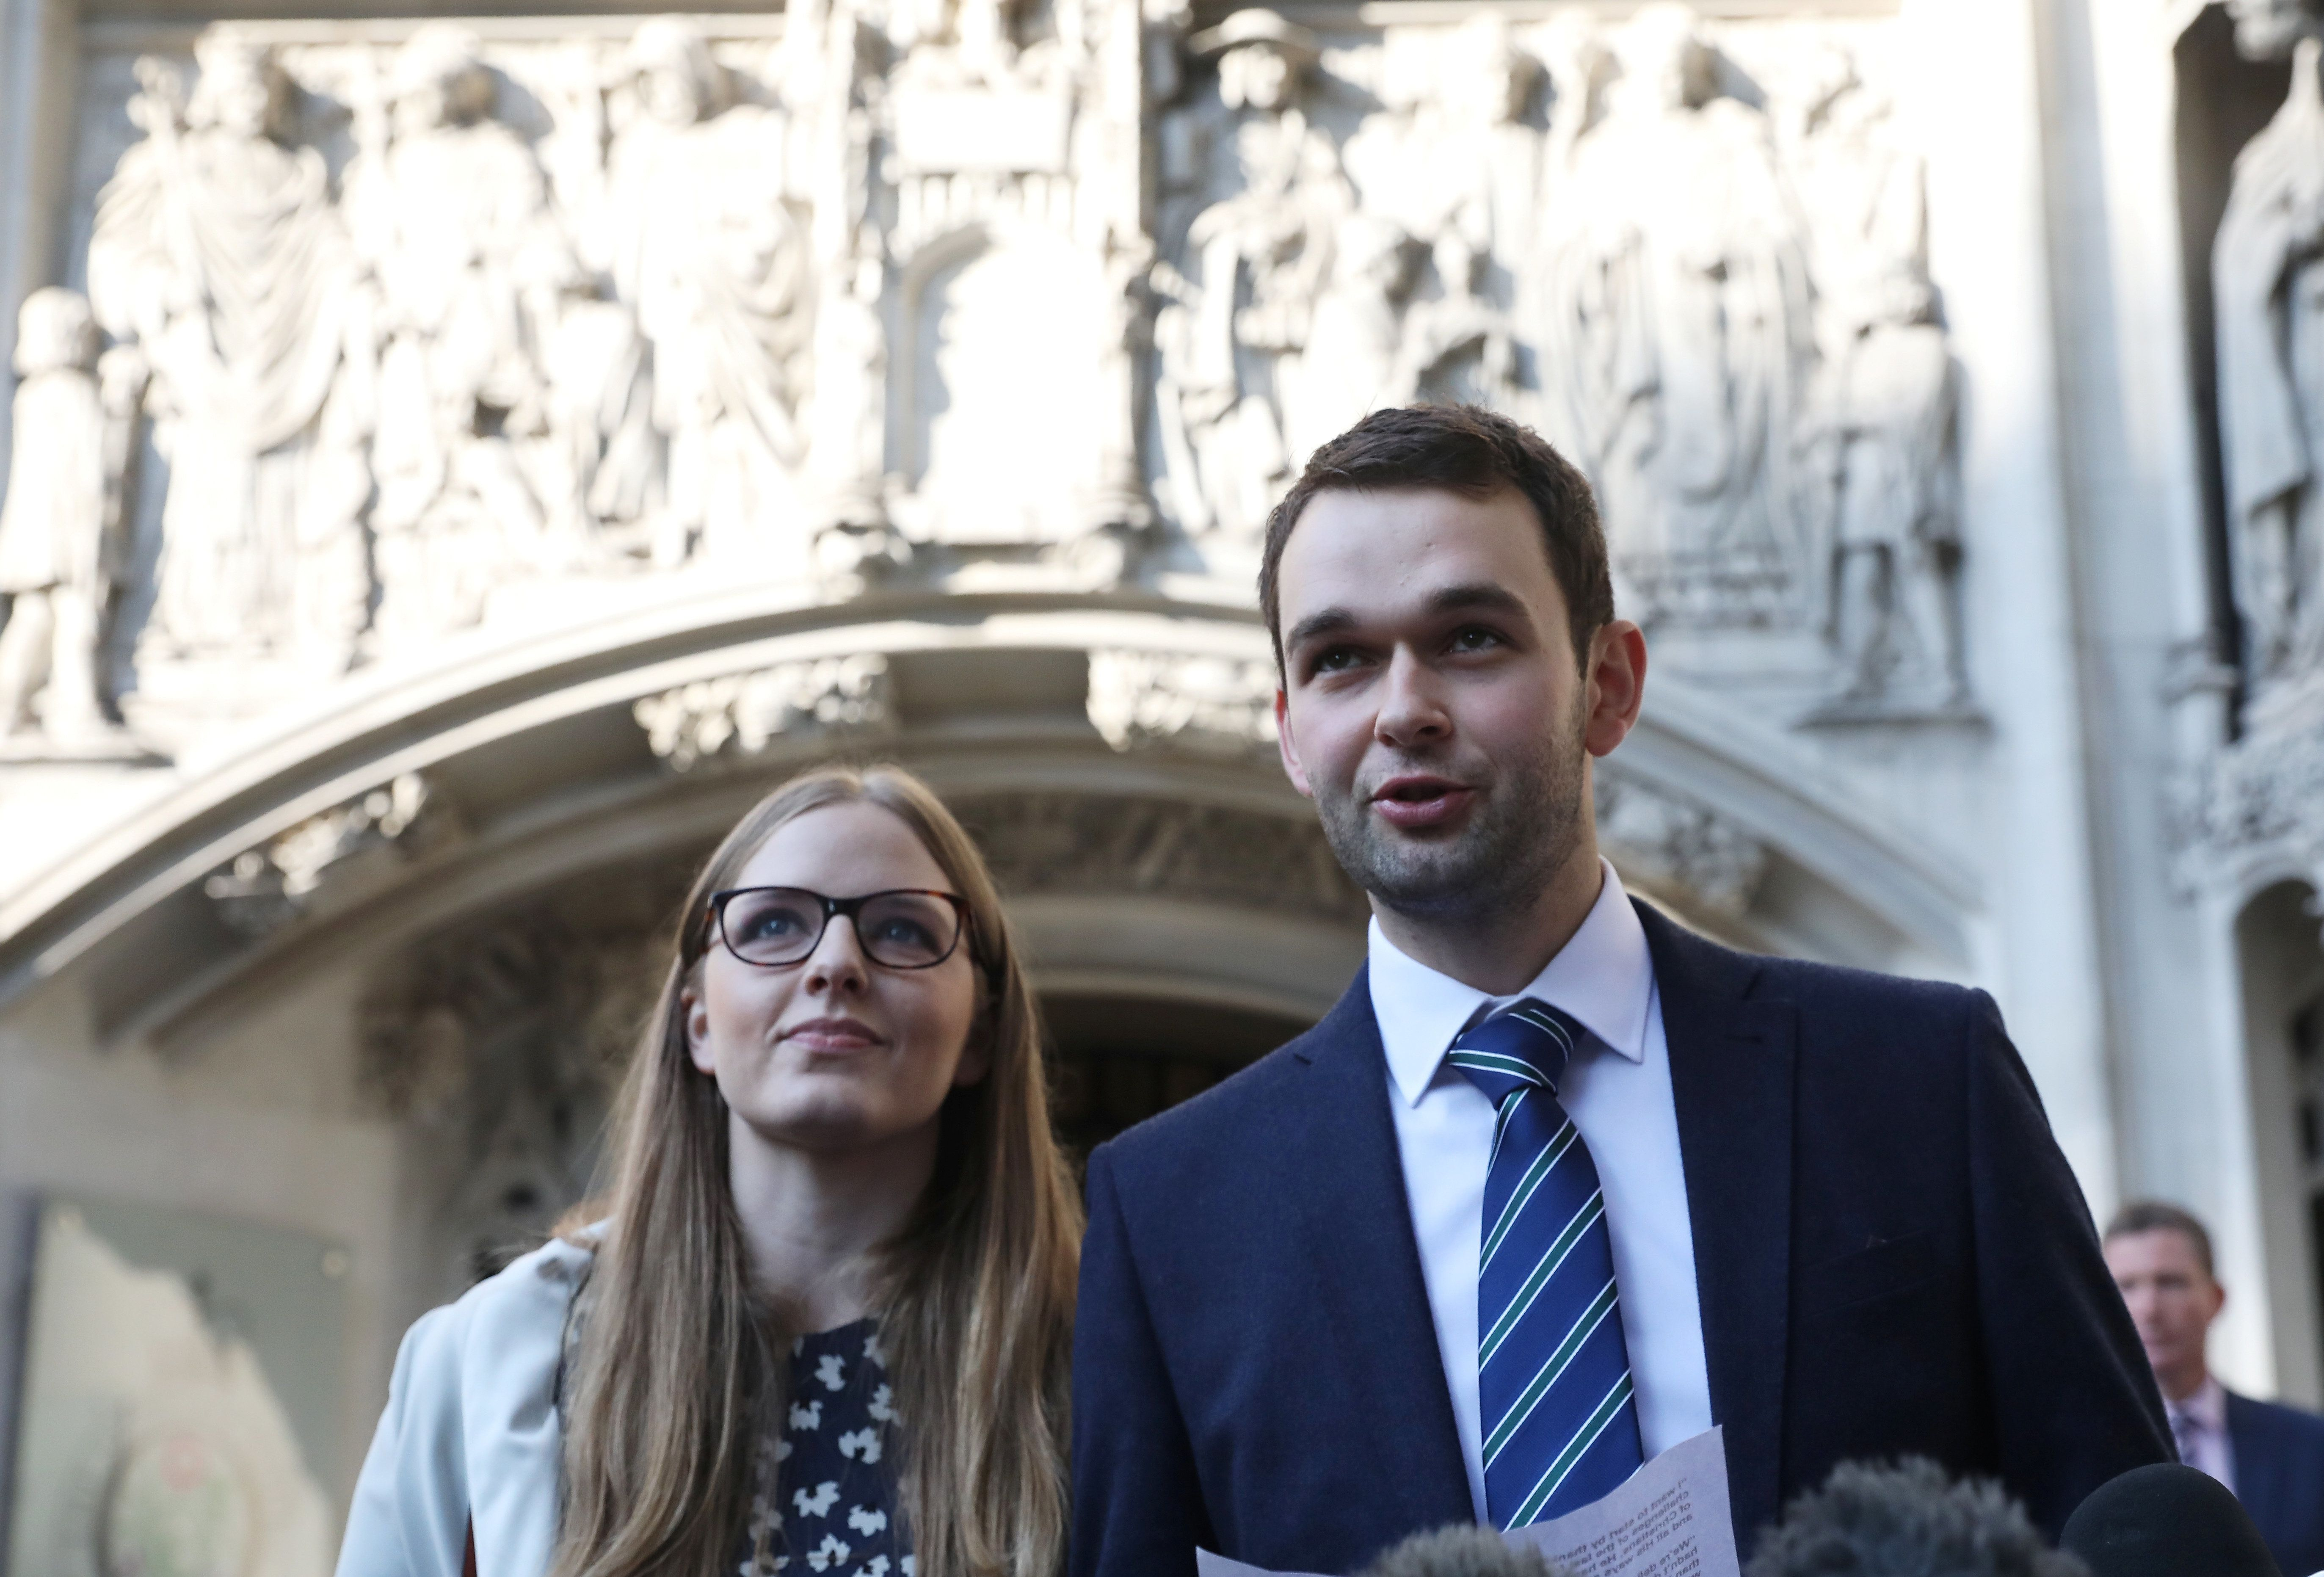 Daniel and Amy McArthur, who own Ashers Bakery in Belfast, speak as they leave the Supreme Court in London, Britain, October 10, 2018. REUTERS/Simon Dawson